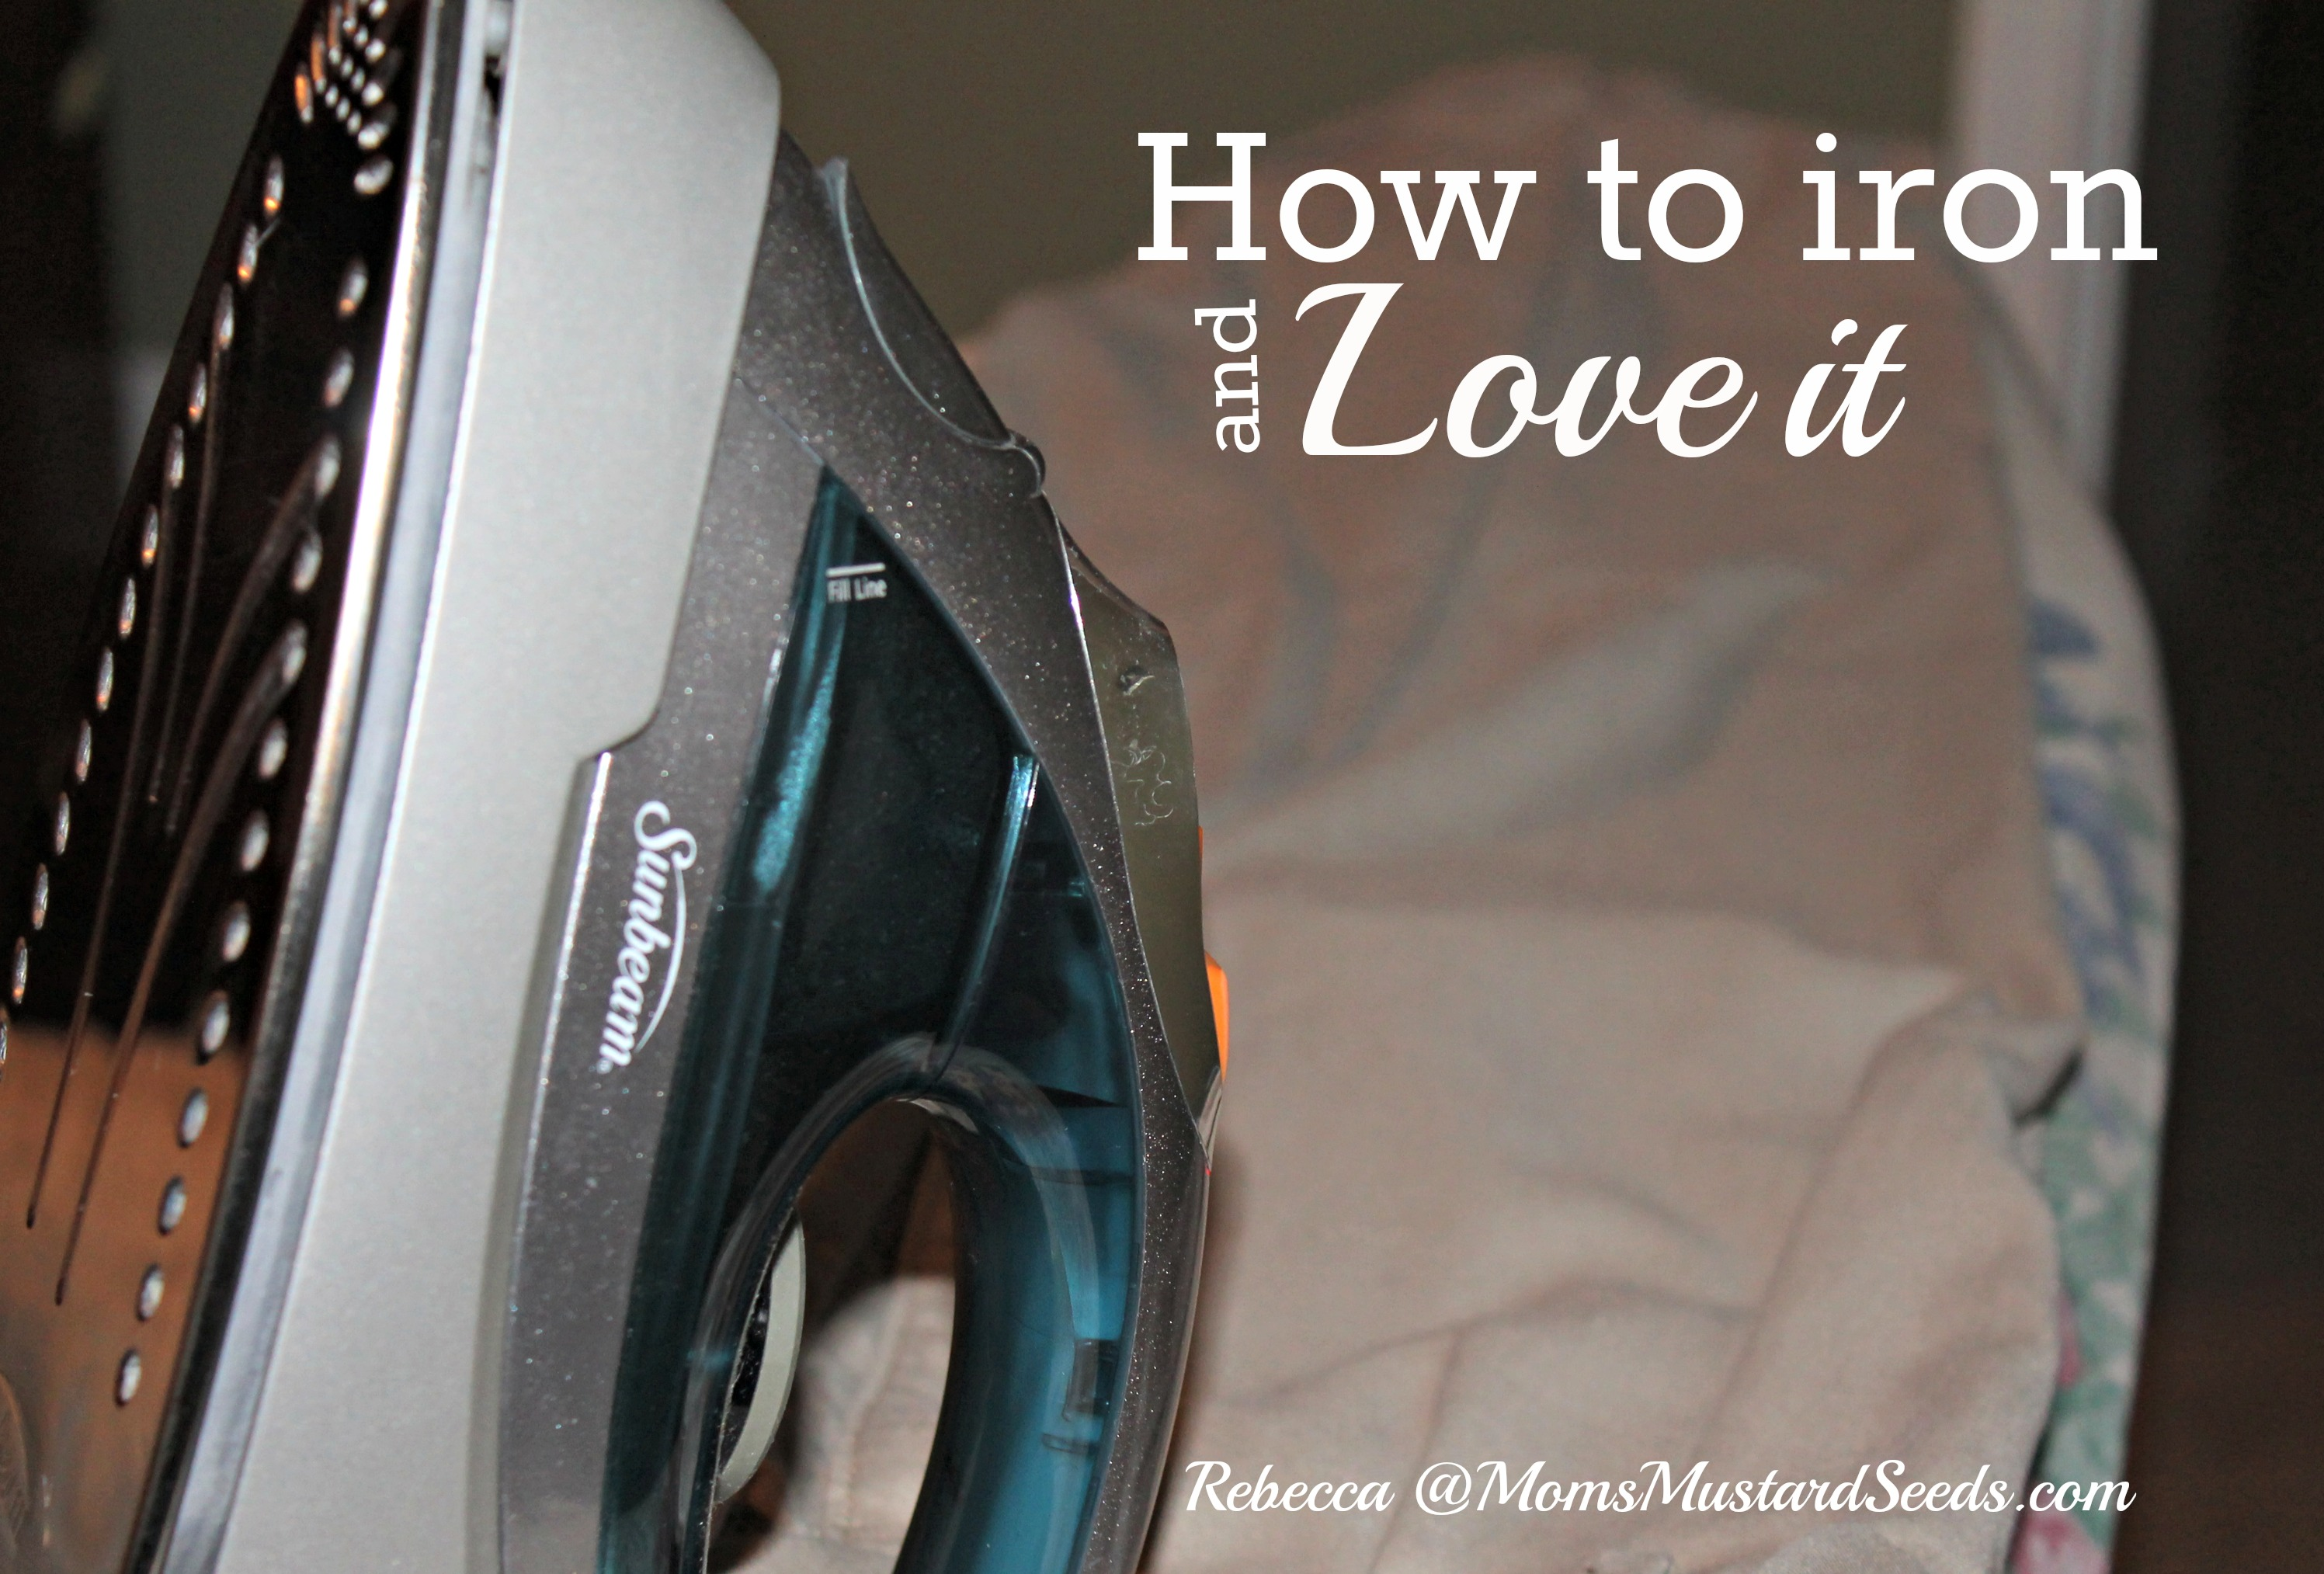 How to iron